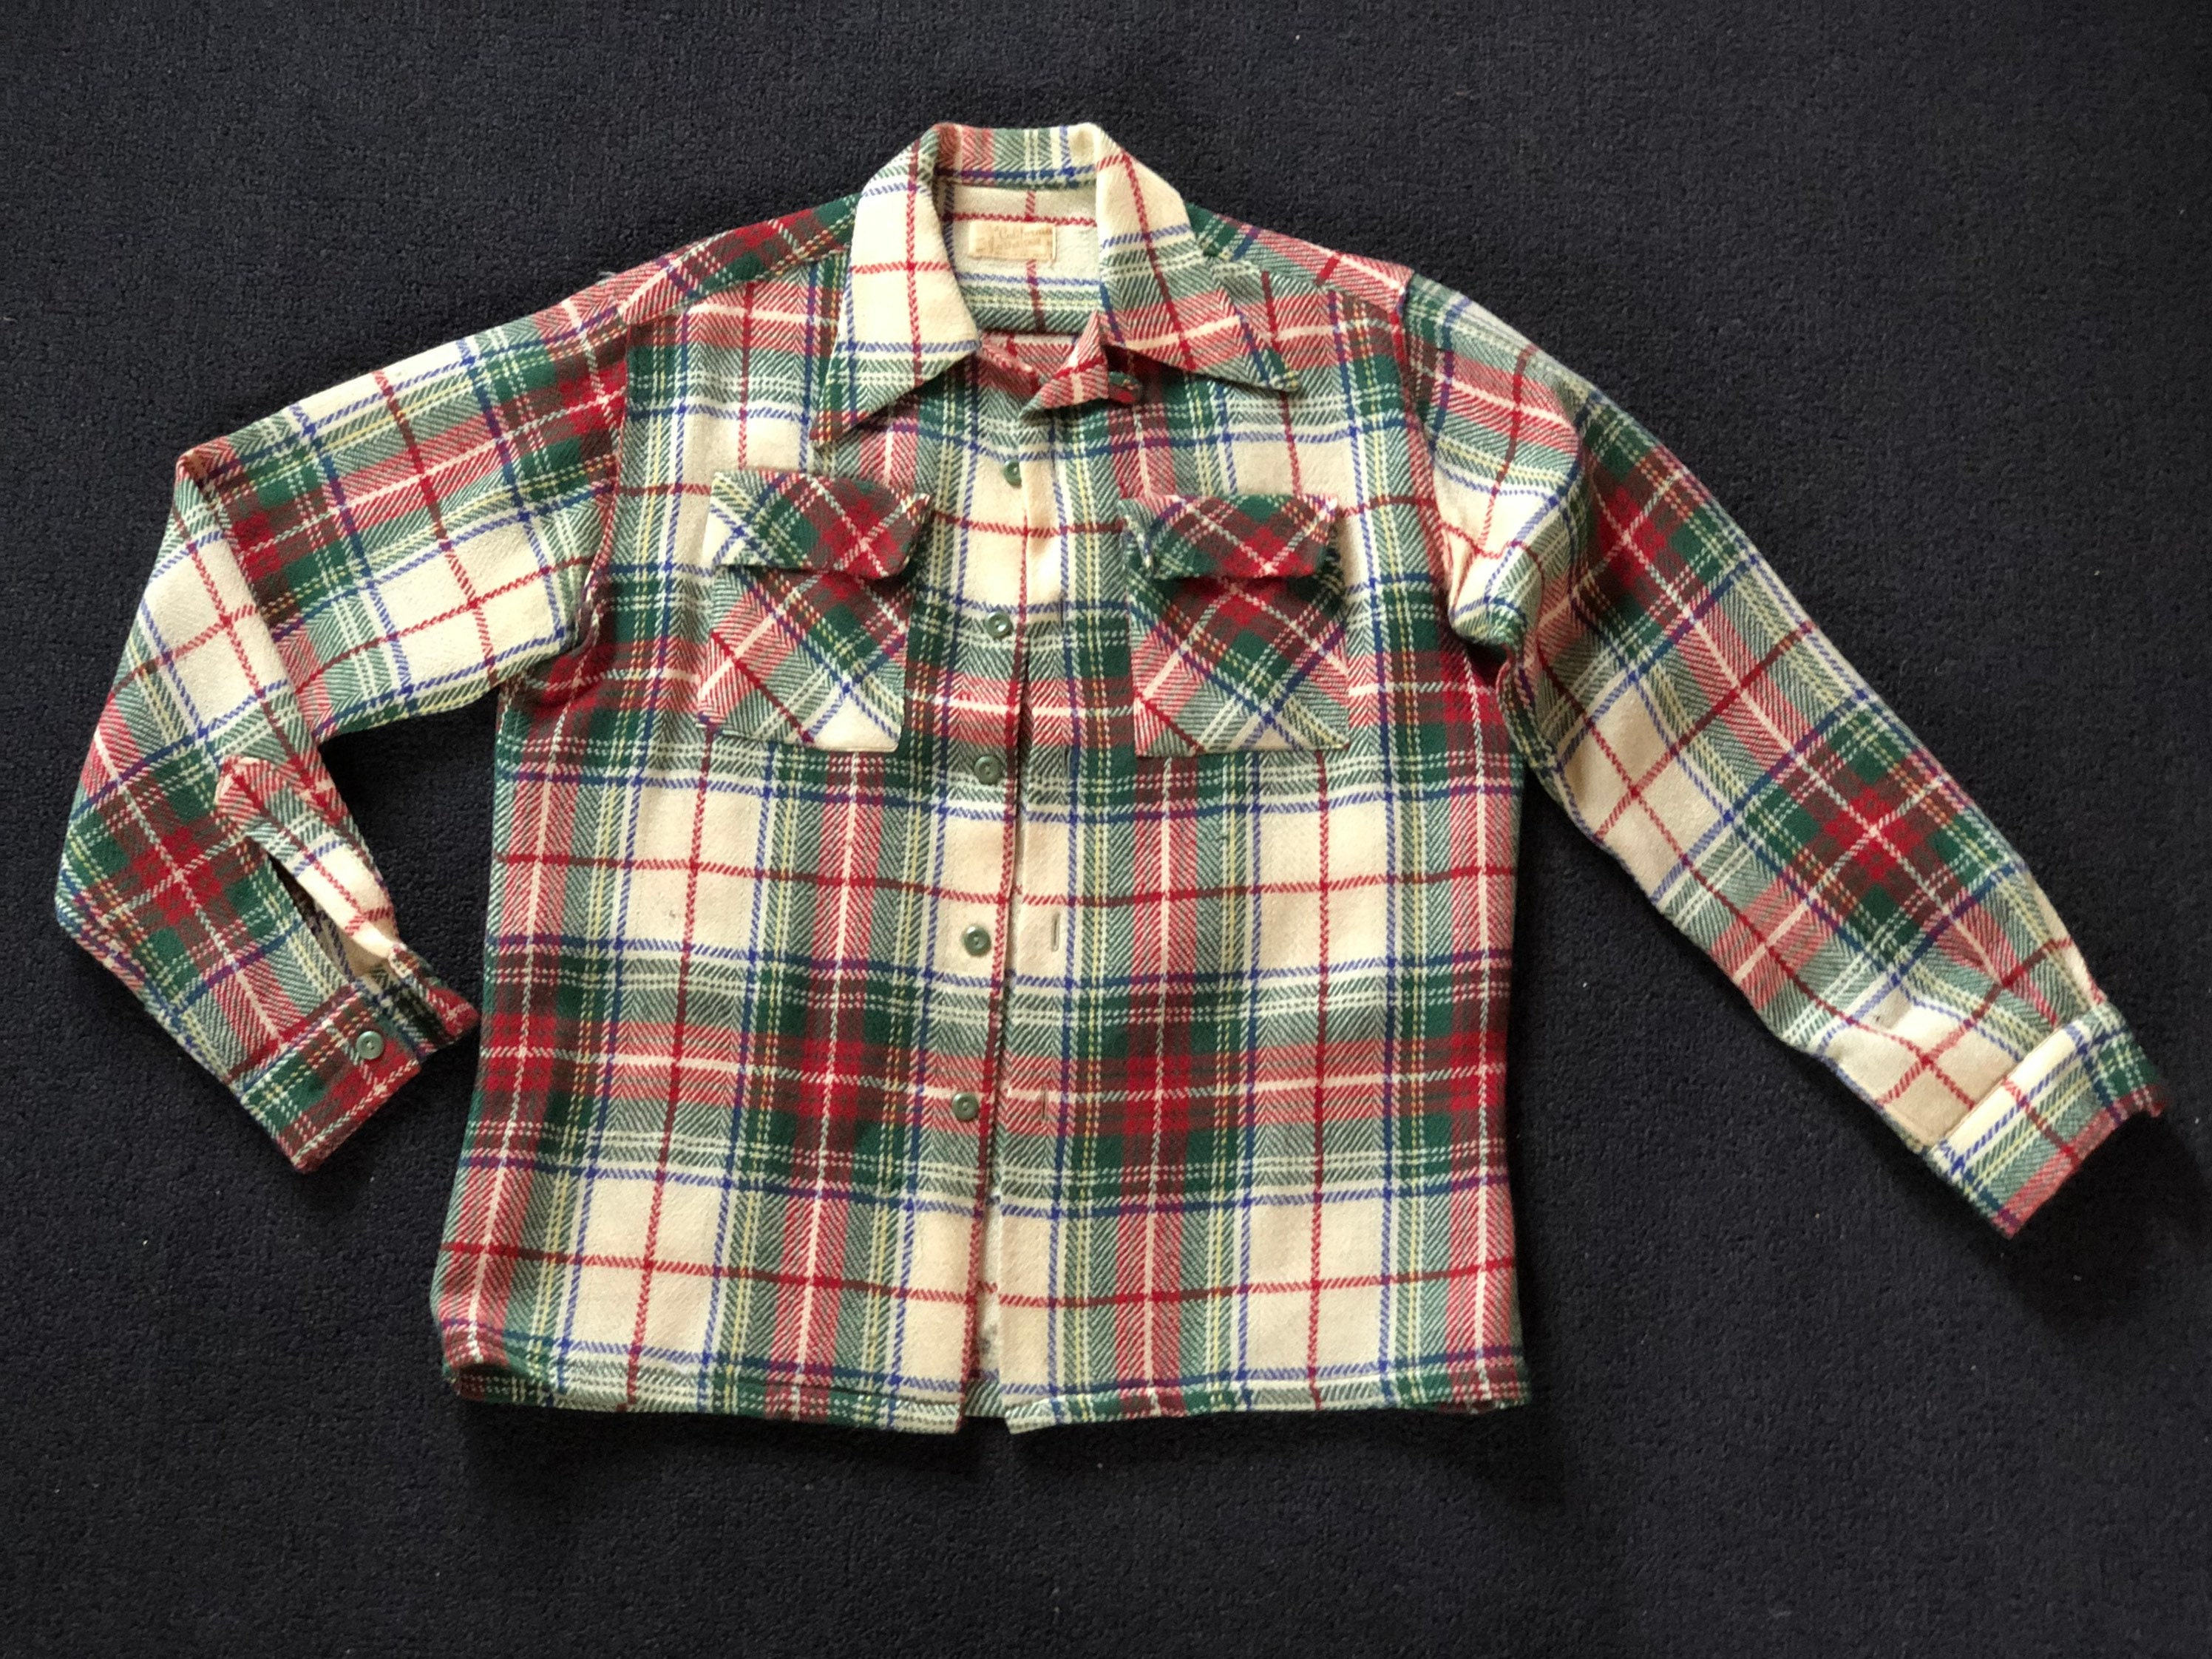 1940s Men's Shirts, Sweaters, Vests 1940s Mens Plaid Medium Wool Long Sleeve Shirt - California Sportsman Take It Easy Made in Image Of Man Swinging Golf Club $0.00 AT vintagedancer.com